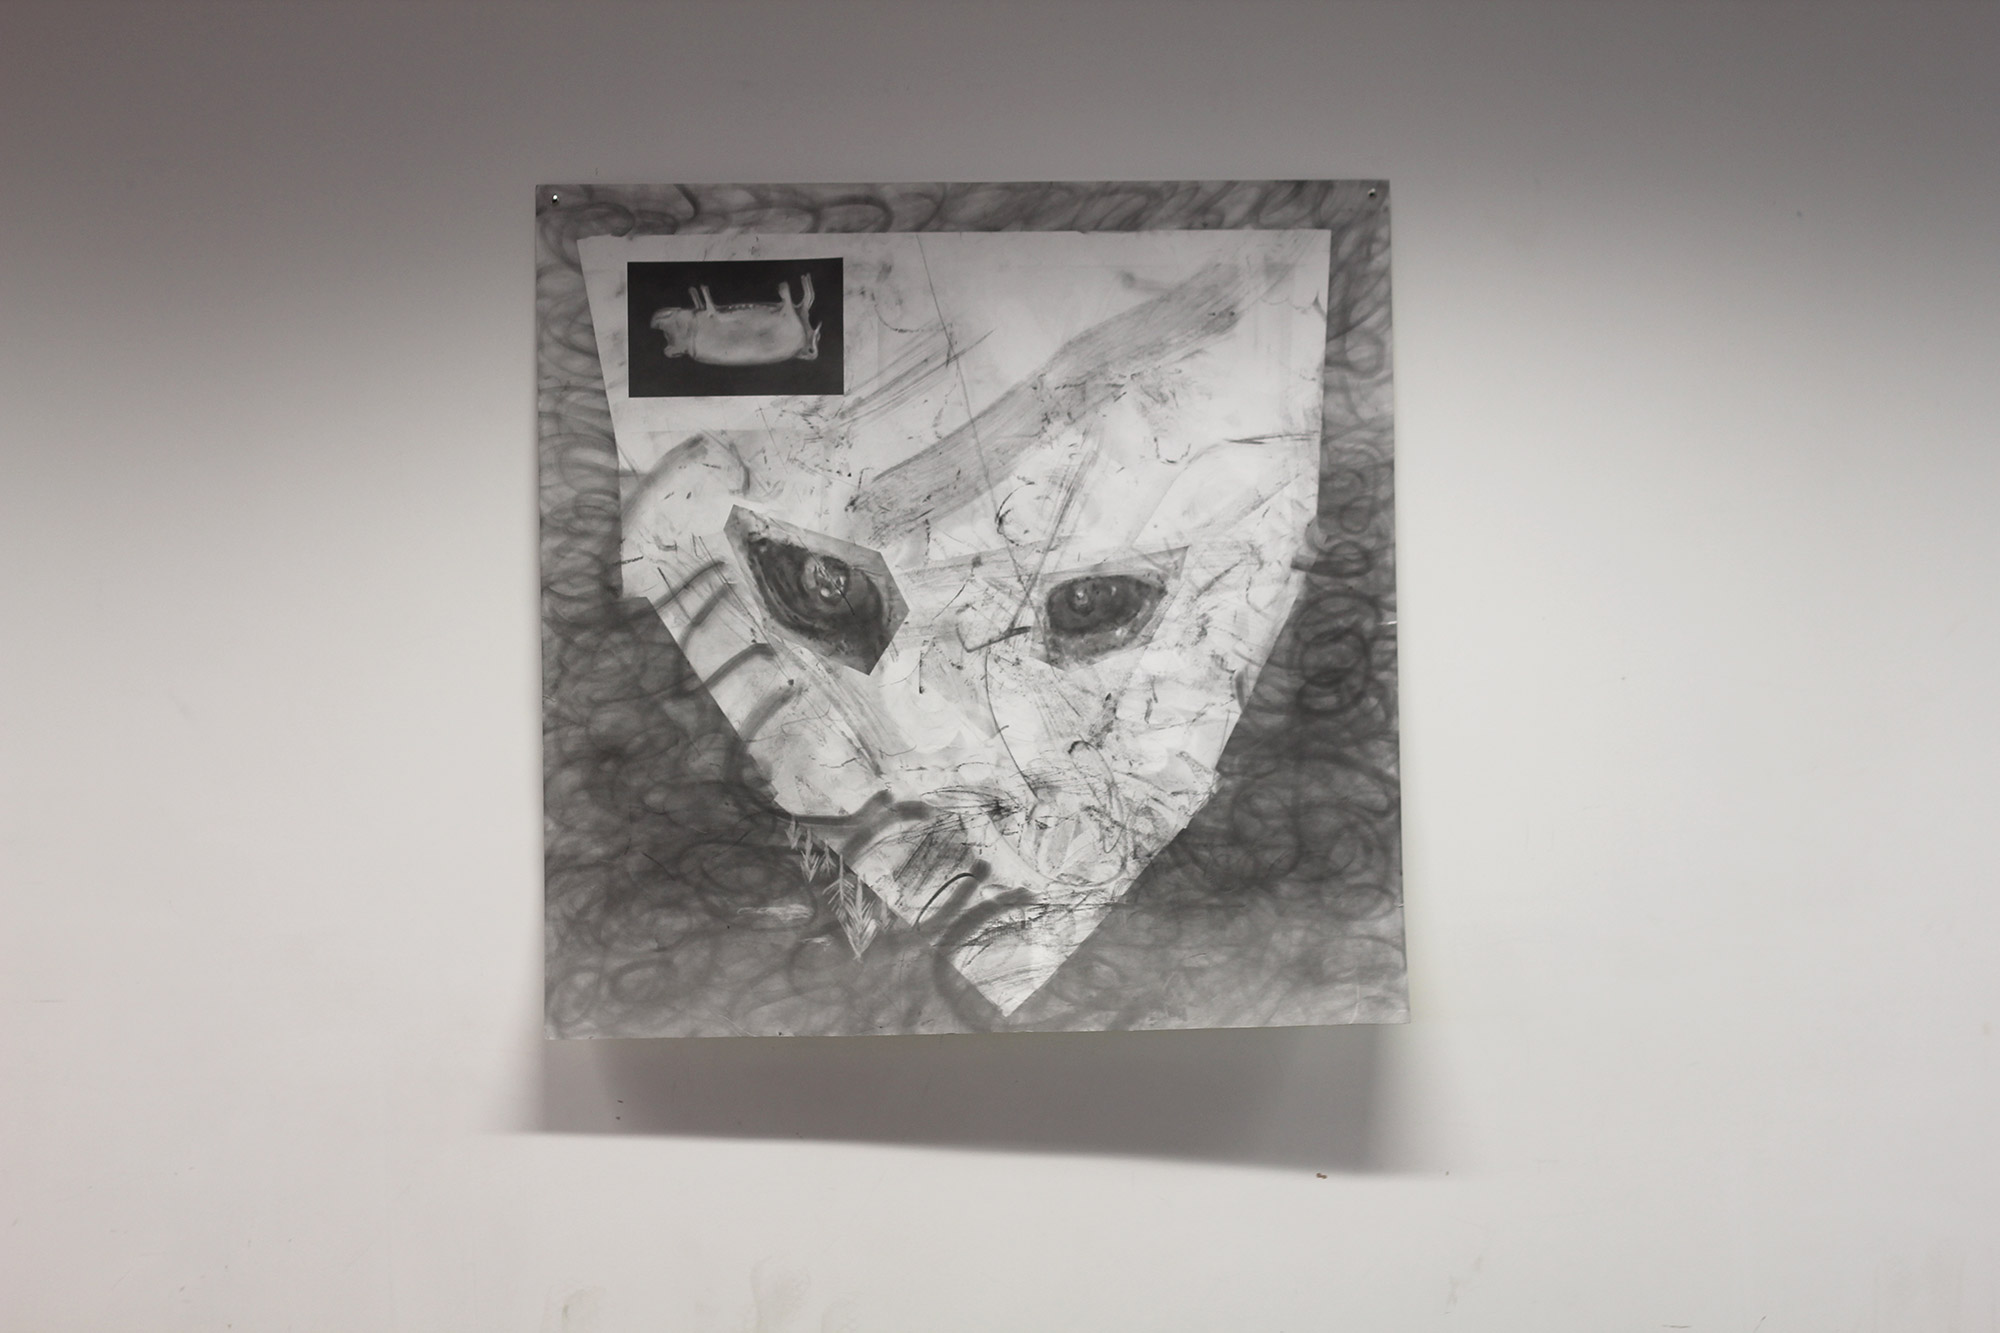 Plasticiser, Lab Installation Shot, Graphite & Pencil on Paper, 100cm x 100cm